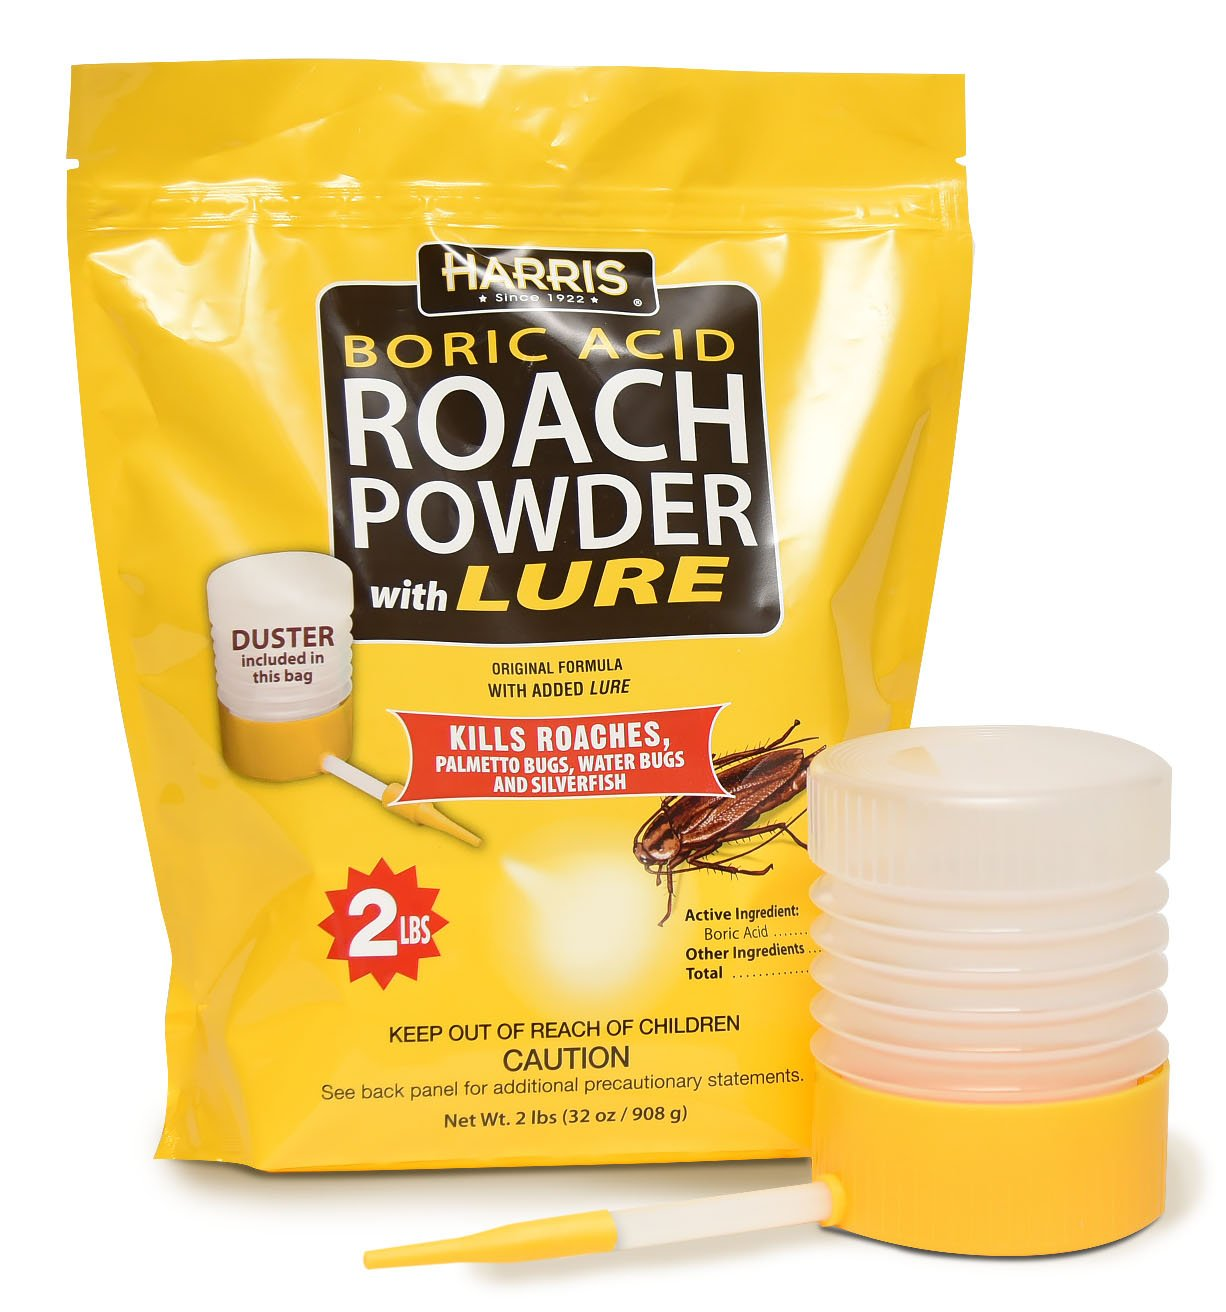 Harris Boric Acid Roach and Silverfish Killer Powder w/Lure, Powder Duster Included in The Bag (32oz)